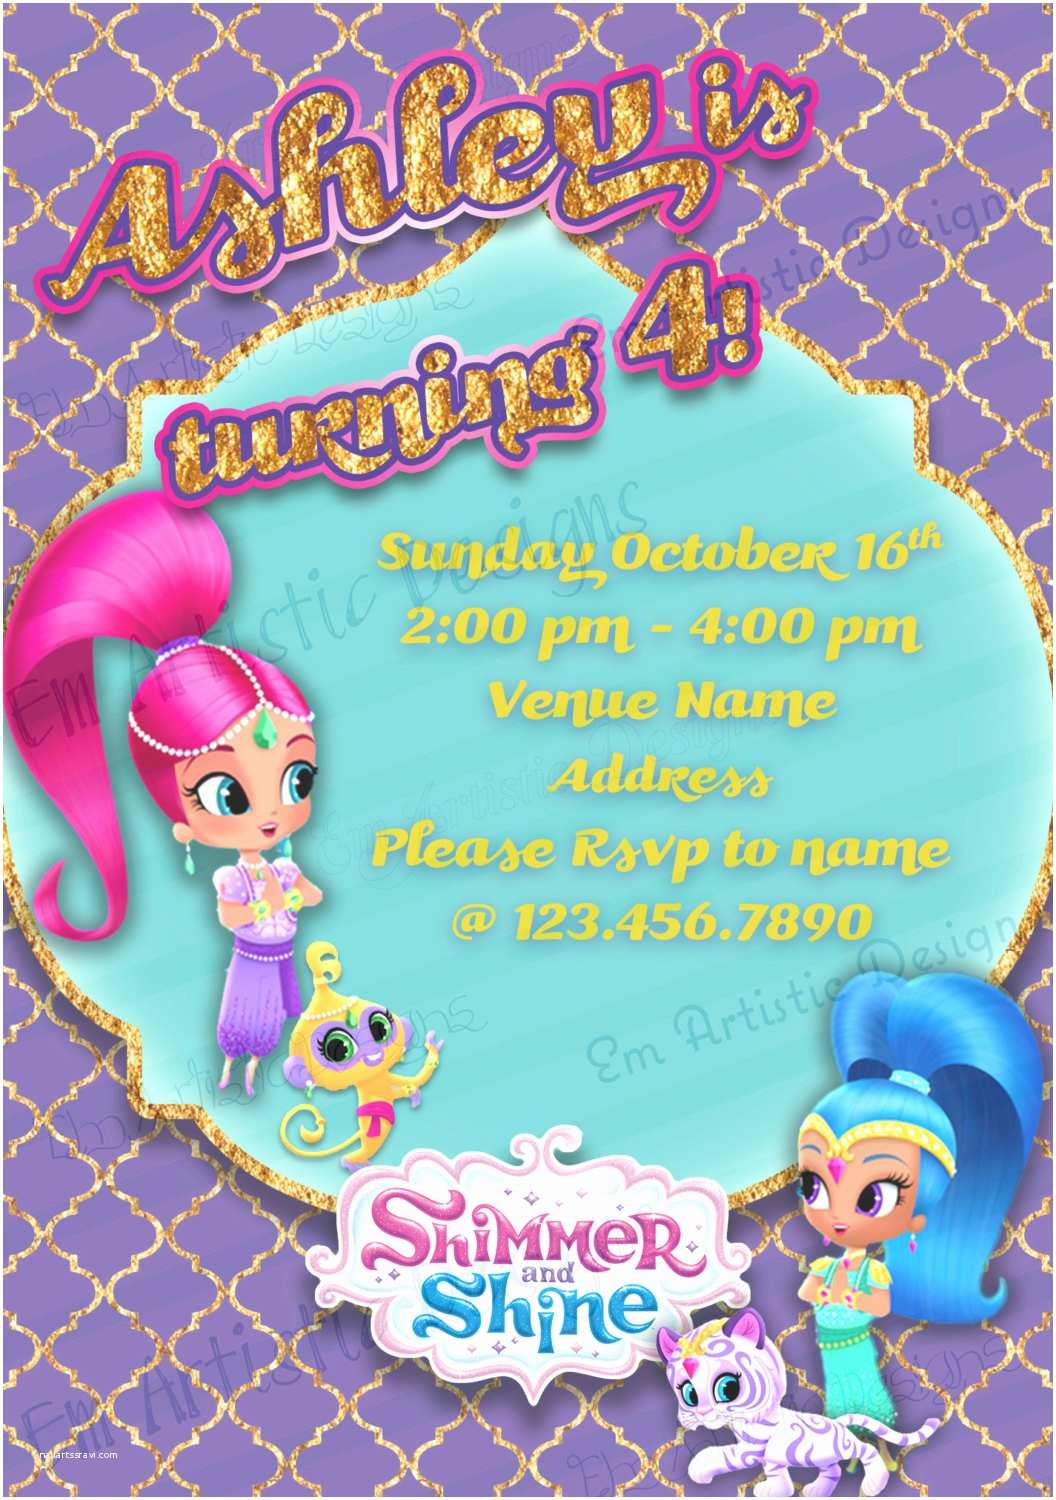 Shimmer and Shine Party Invitations Individual Shimmer and Shine Birthday Party Invitations